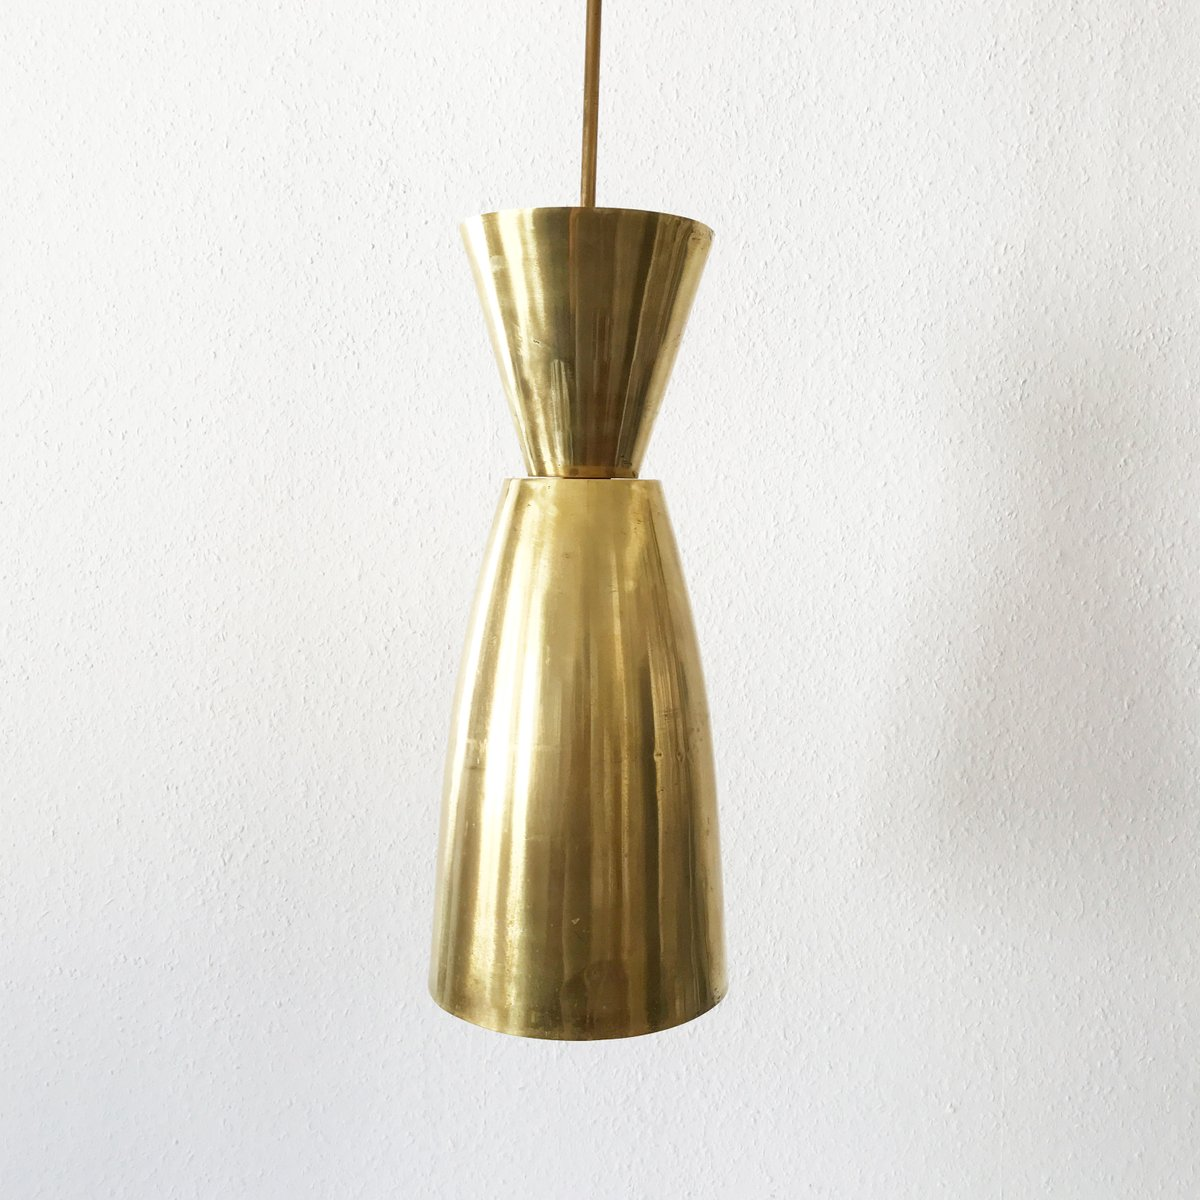 Midcentury Large Diabolo Brass Pendant Light For Sale At. Best Quartz Countertops. Courtyard Gates. Fireside Antiques. High Back Sink. Urban Threads. Wesley Allen Iron Beds. Driveway Cover. Sofa Bed